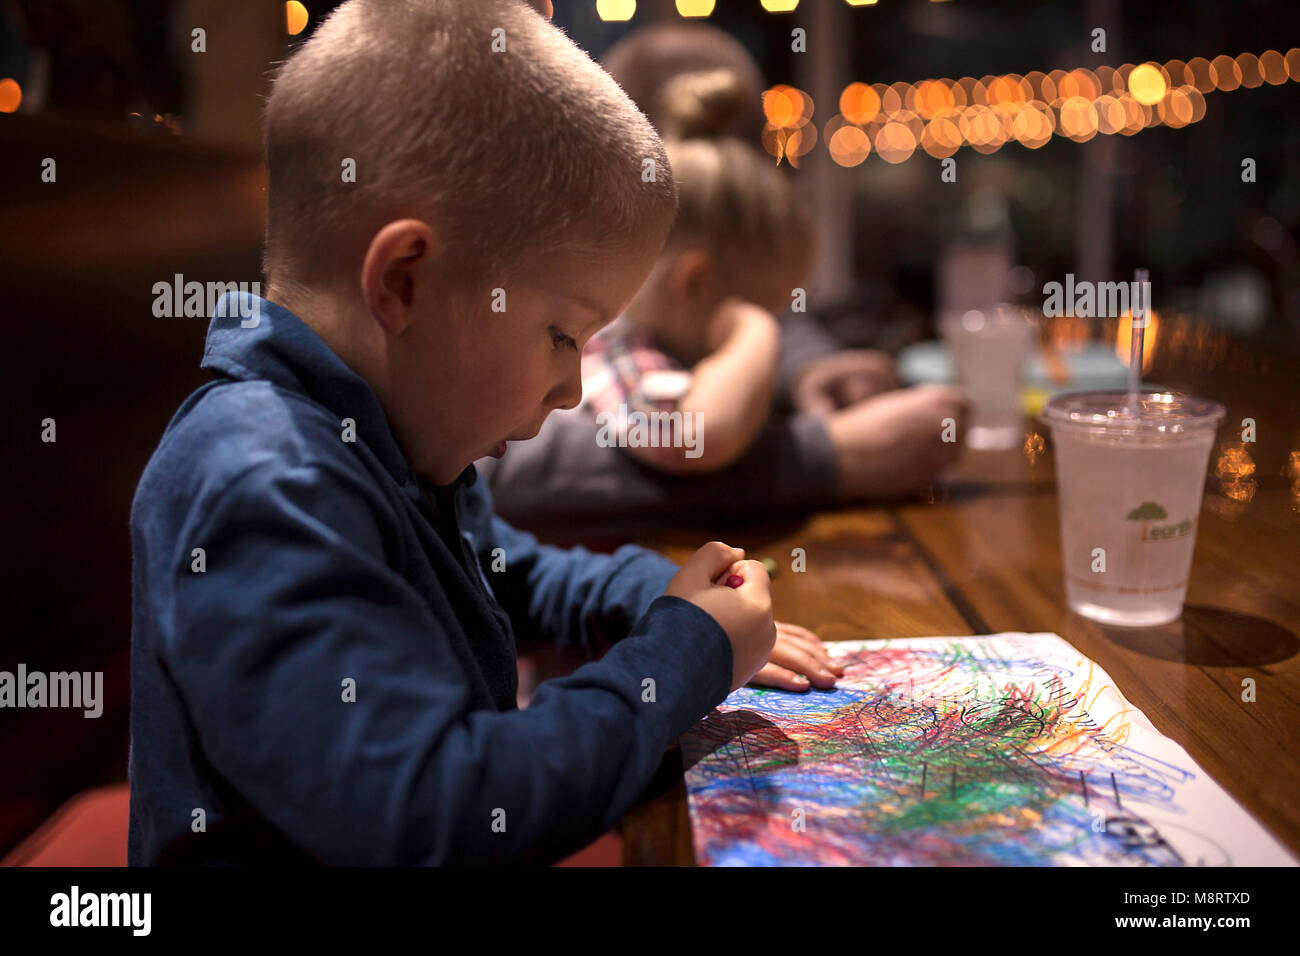 Side view of boy coloring on paper at dining table in restaurant - Stock Image